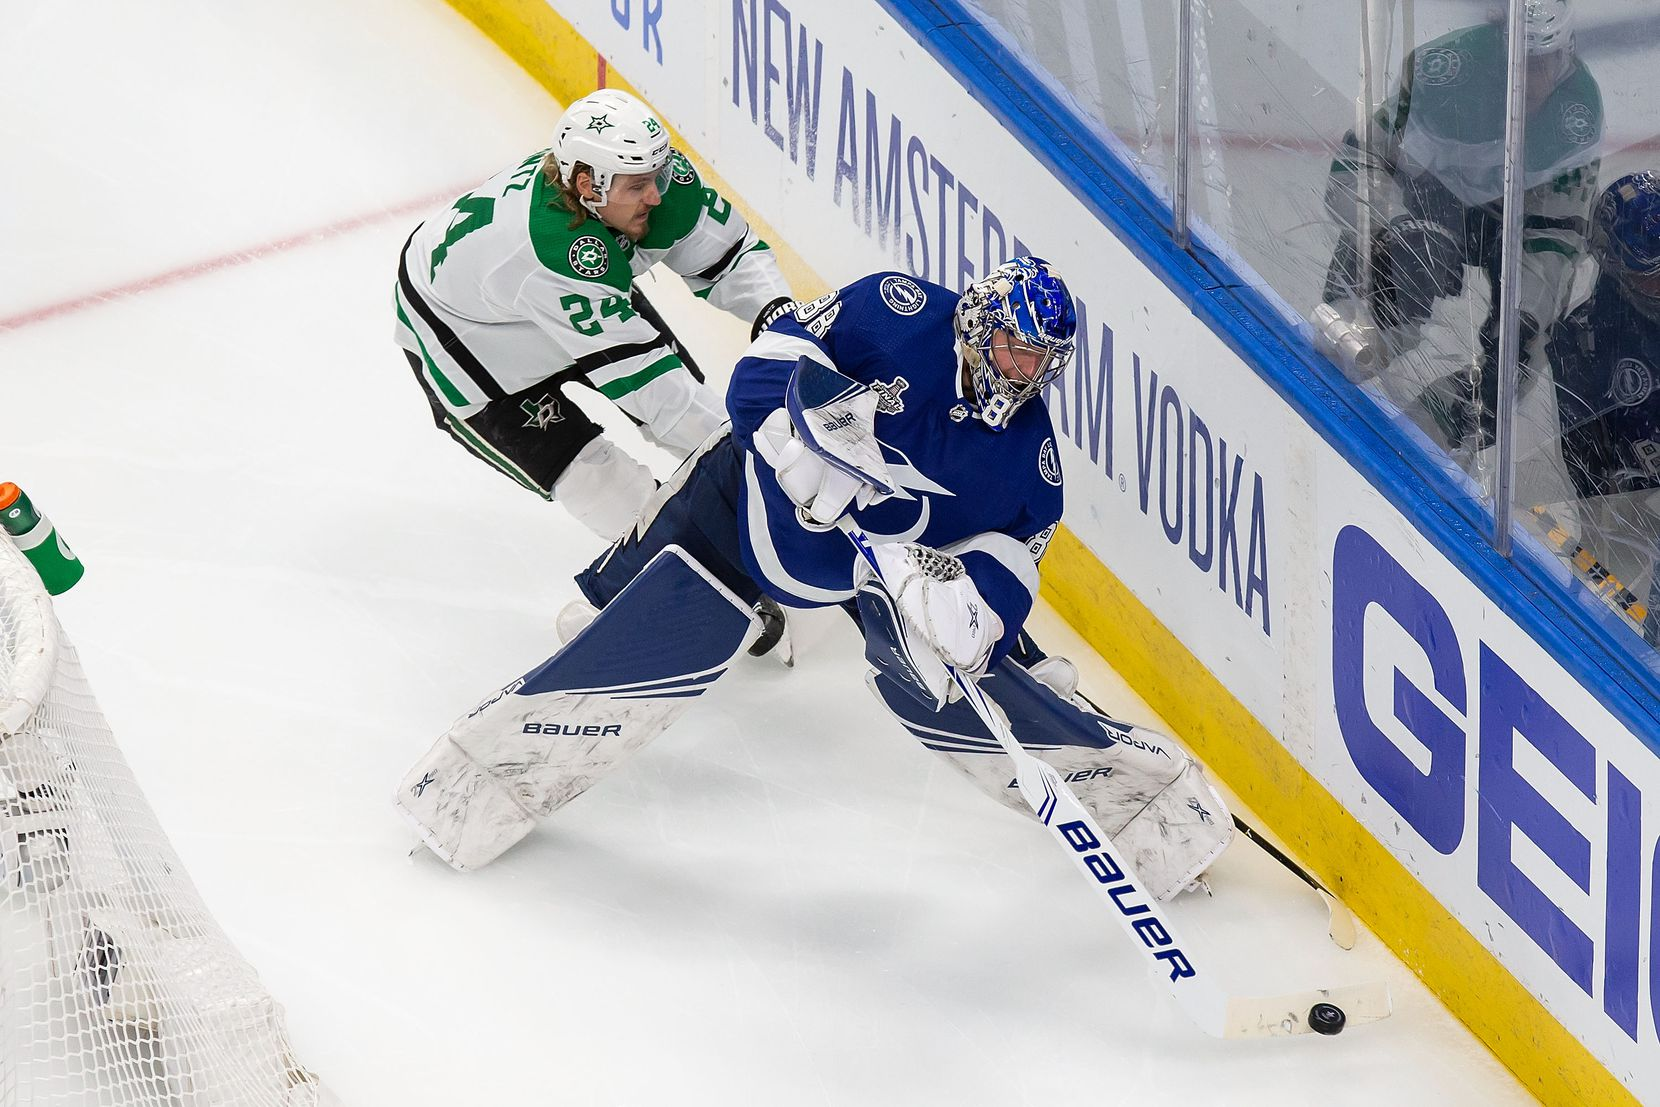 Roope Hintz (24) of the Dallas Stars harasses goaltender Andrei Vasilevskiy (88) of the Tampa Bay Lightning during Game Two of the Stanley Cup Final at Rogers Place in Edmonton, Alberta, Canada on Monday, September 21, 2020. (Codie McLachlan/Special Contributor)